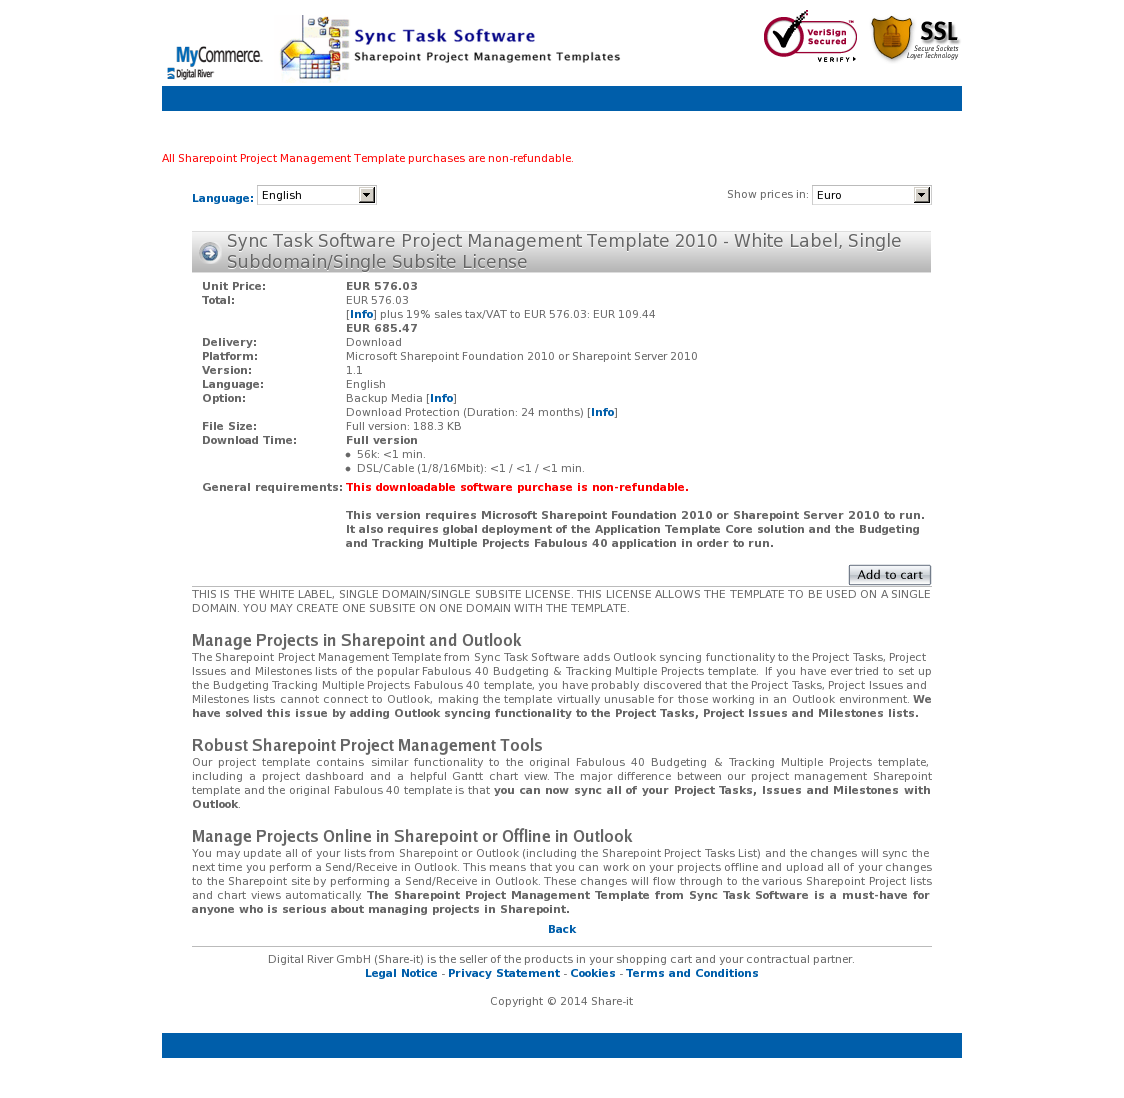 Sync Task Software Project Management Template 2010 - White Label, Single Subdomain/Single Subsite License